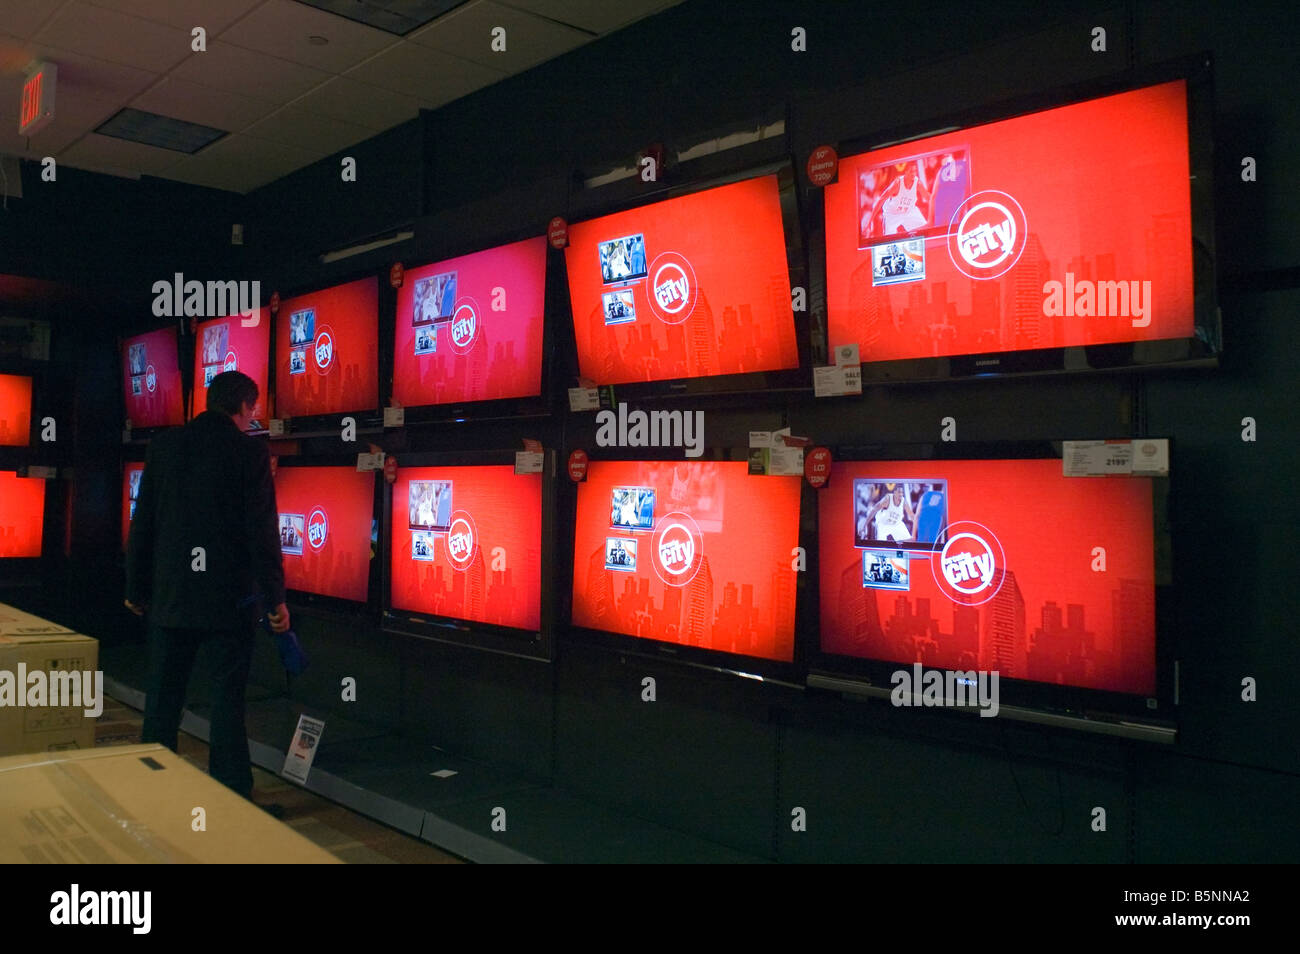 A customer browses the television display in a Circuit City electronics store in New York - Stock Image